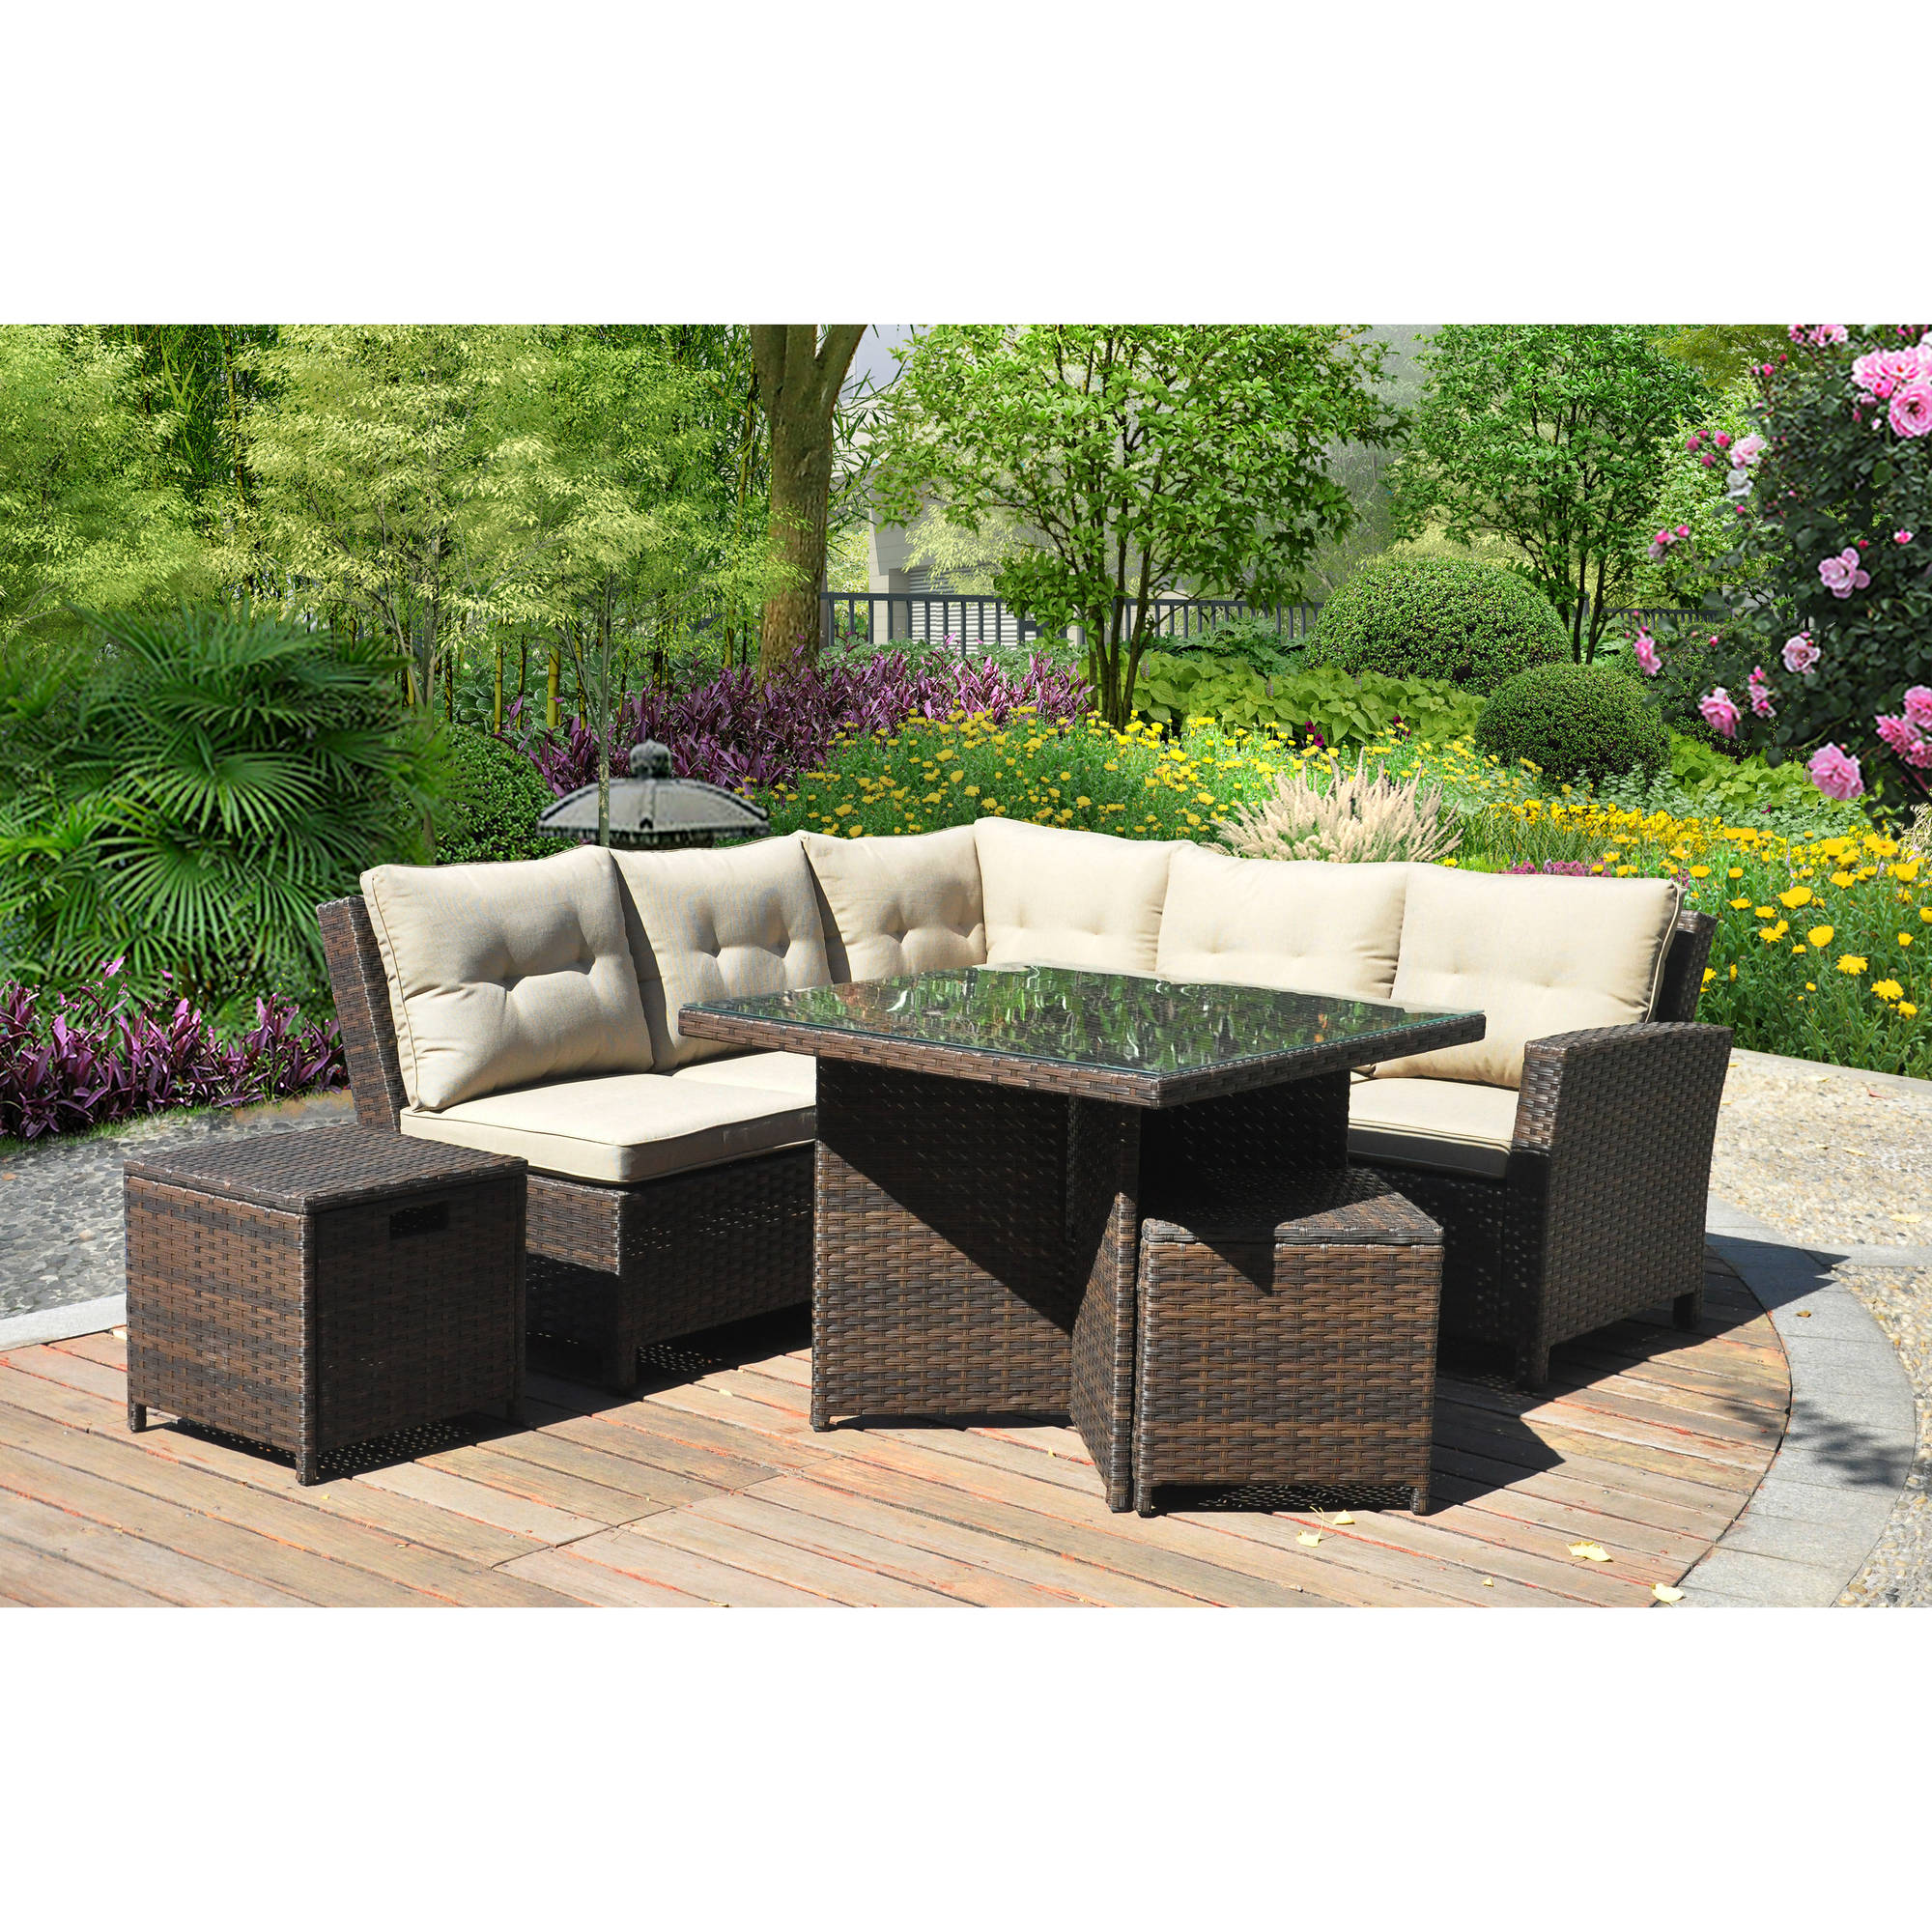 Ideal Mainstays Ragan Meadow II Piece Outdoor Sectional Sofa Seats Walmart